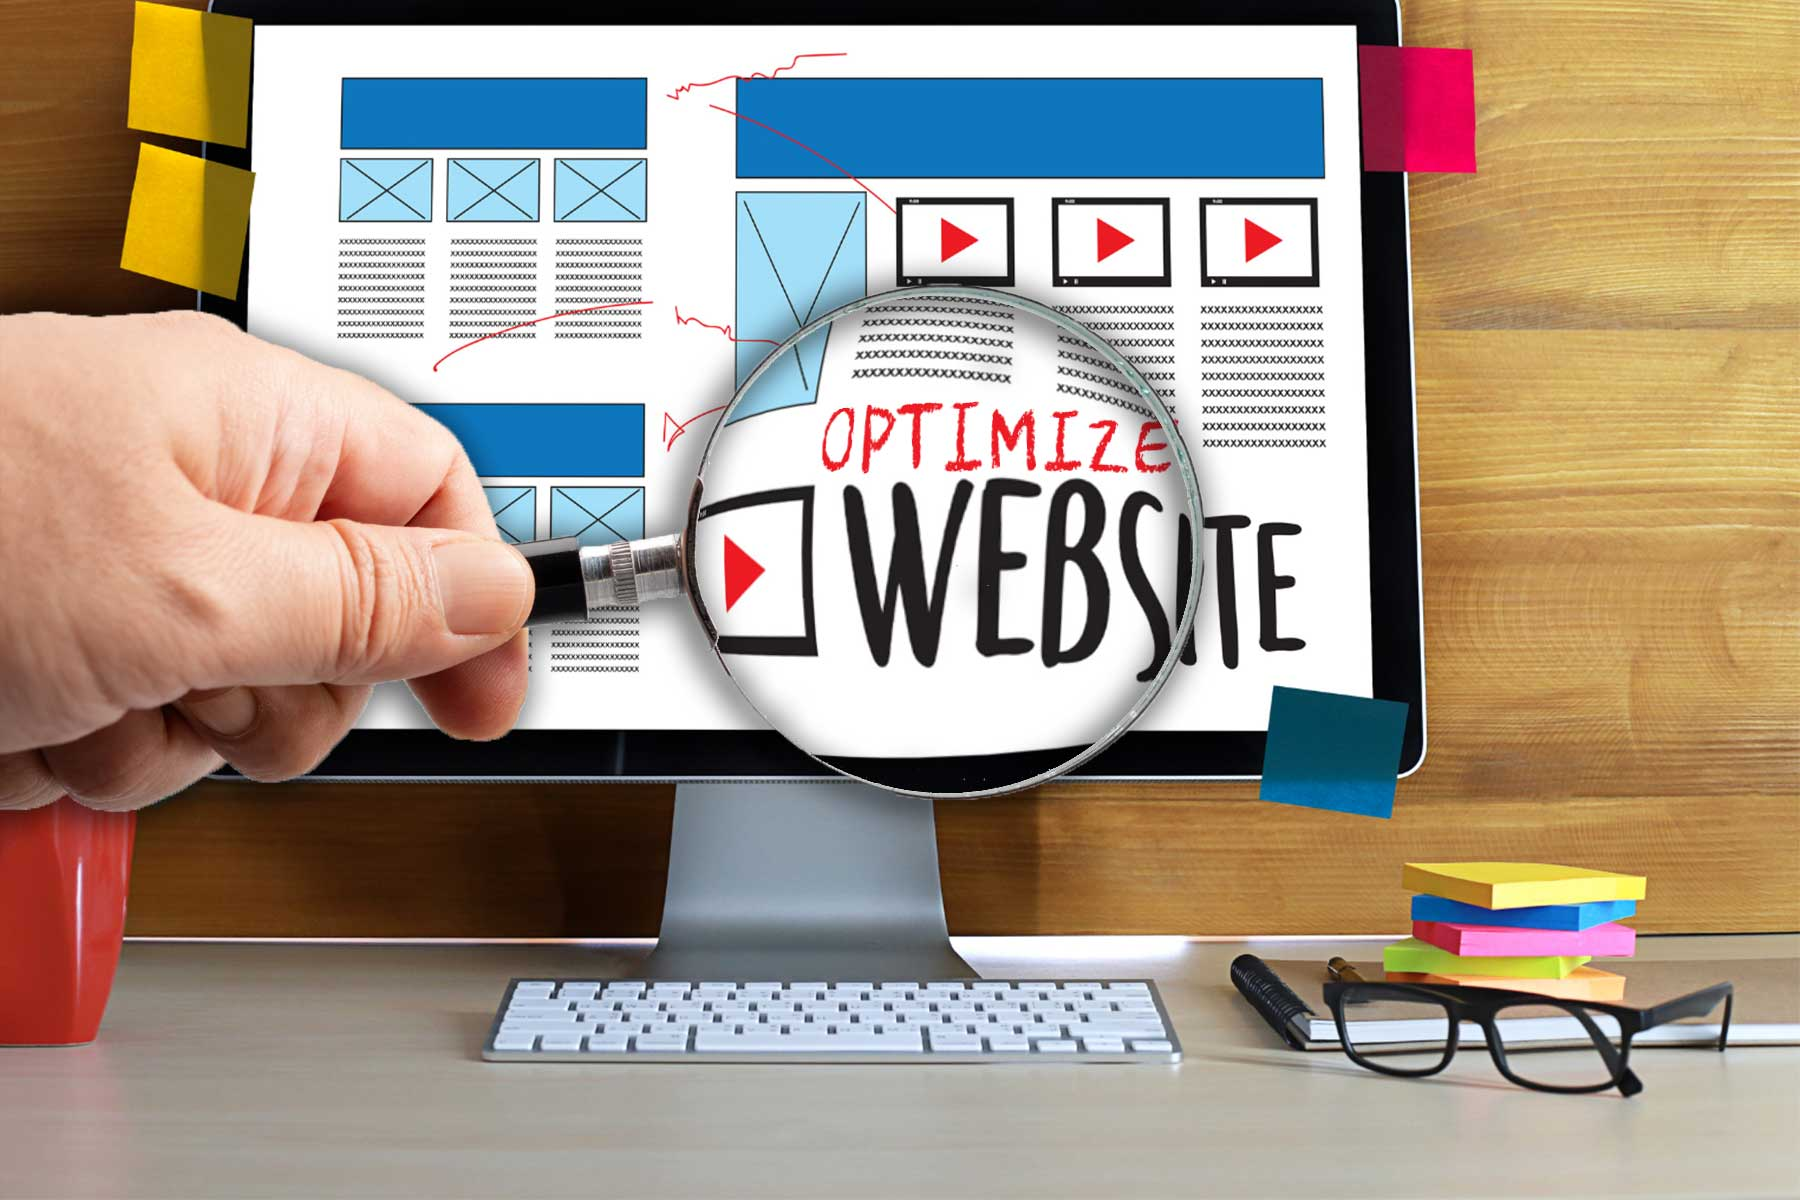 How Do I Optimize My Website to See Better Analytics?